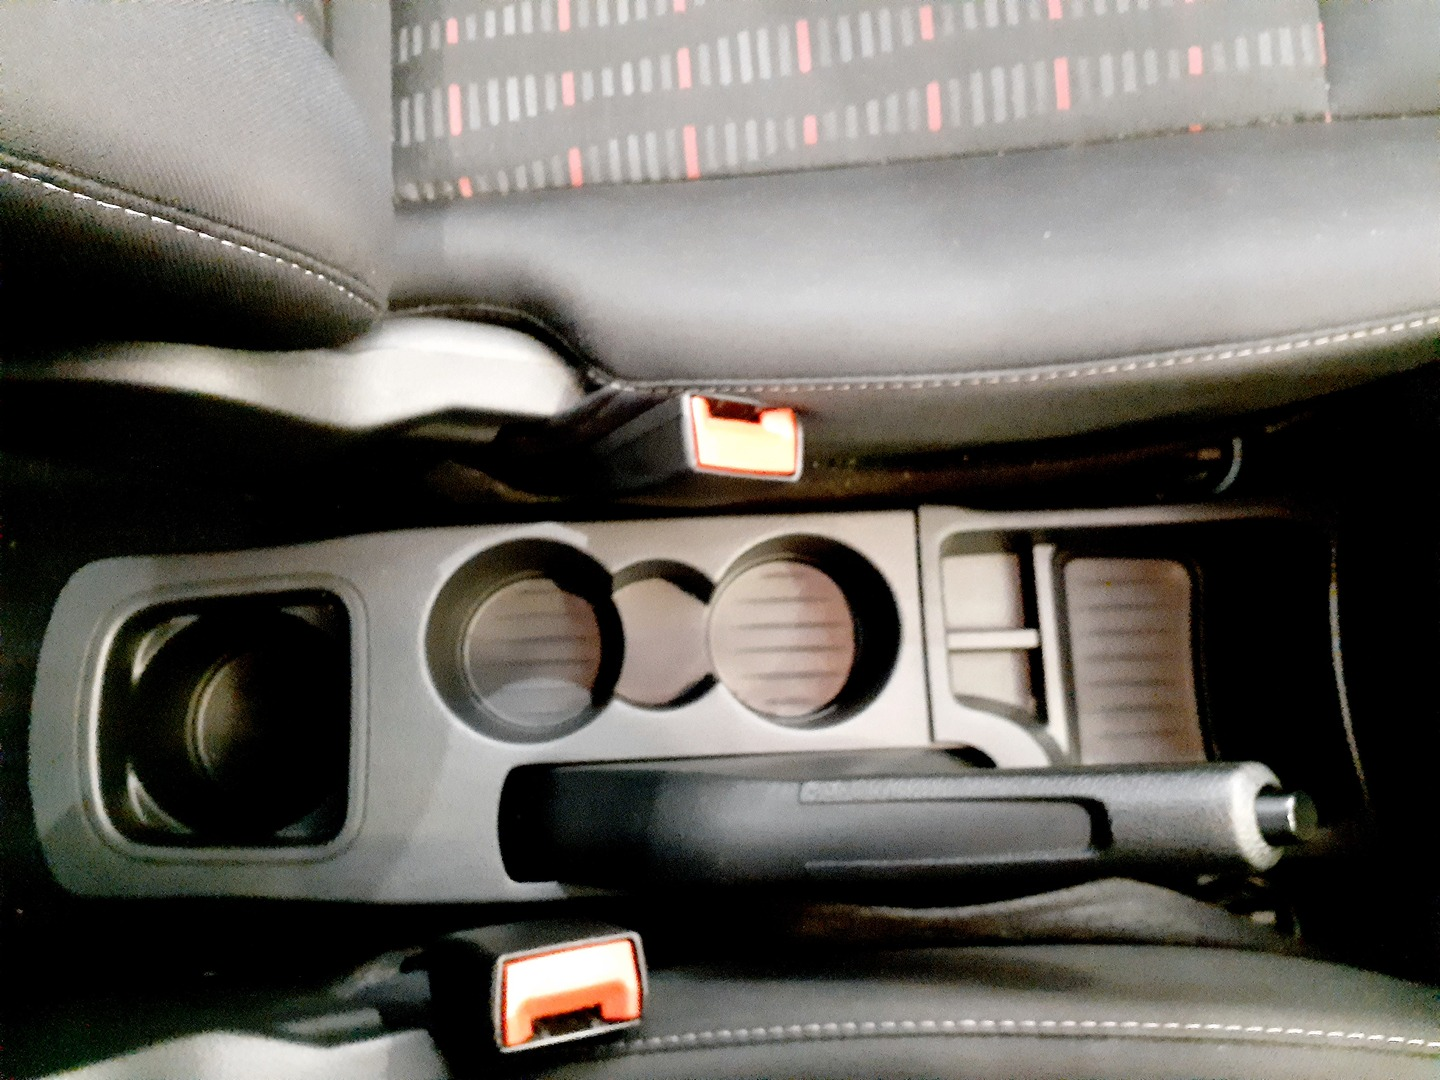 FORD 1.5Ti VCT AMBIENTE (5DR) Johannesburg 15332460